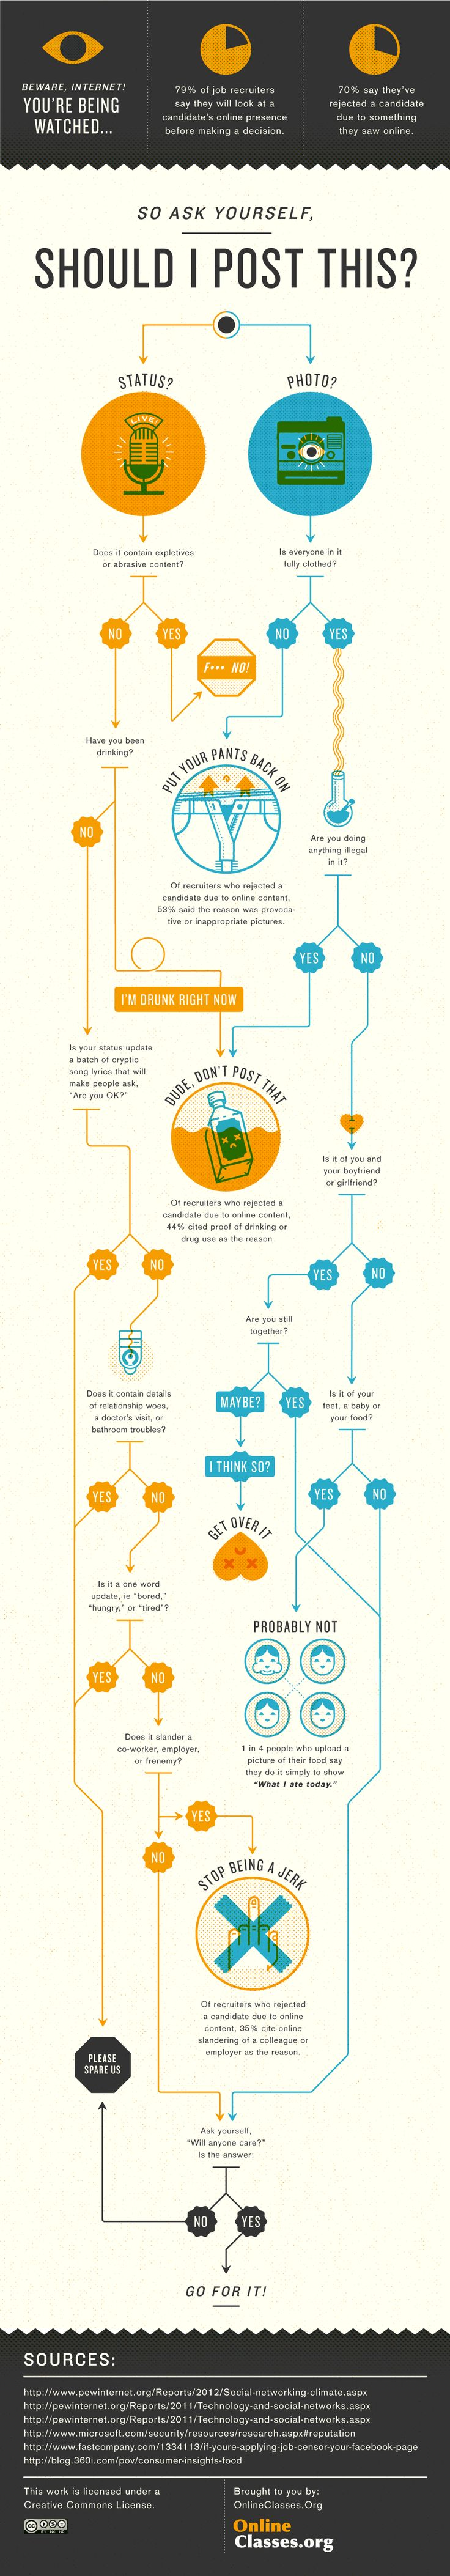 To Share or Not to Share? Manage your online rep with this great infographic